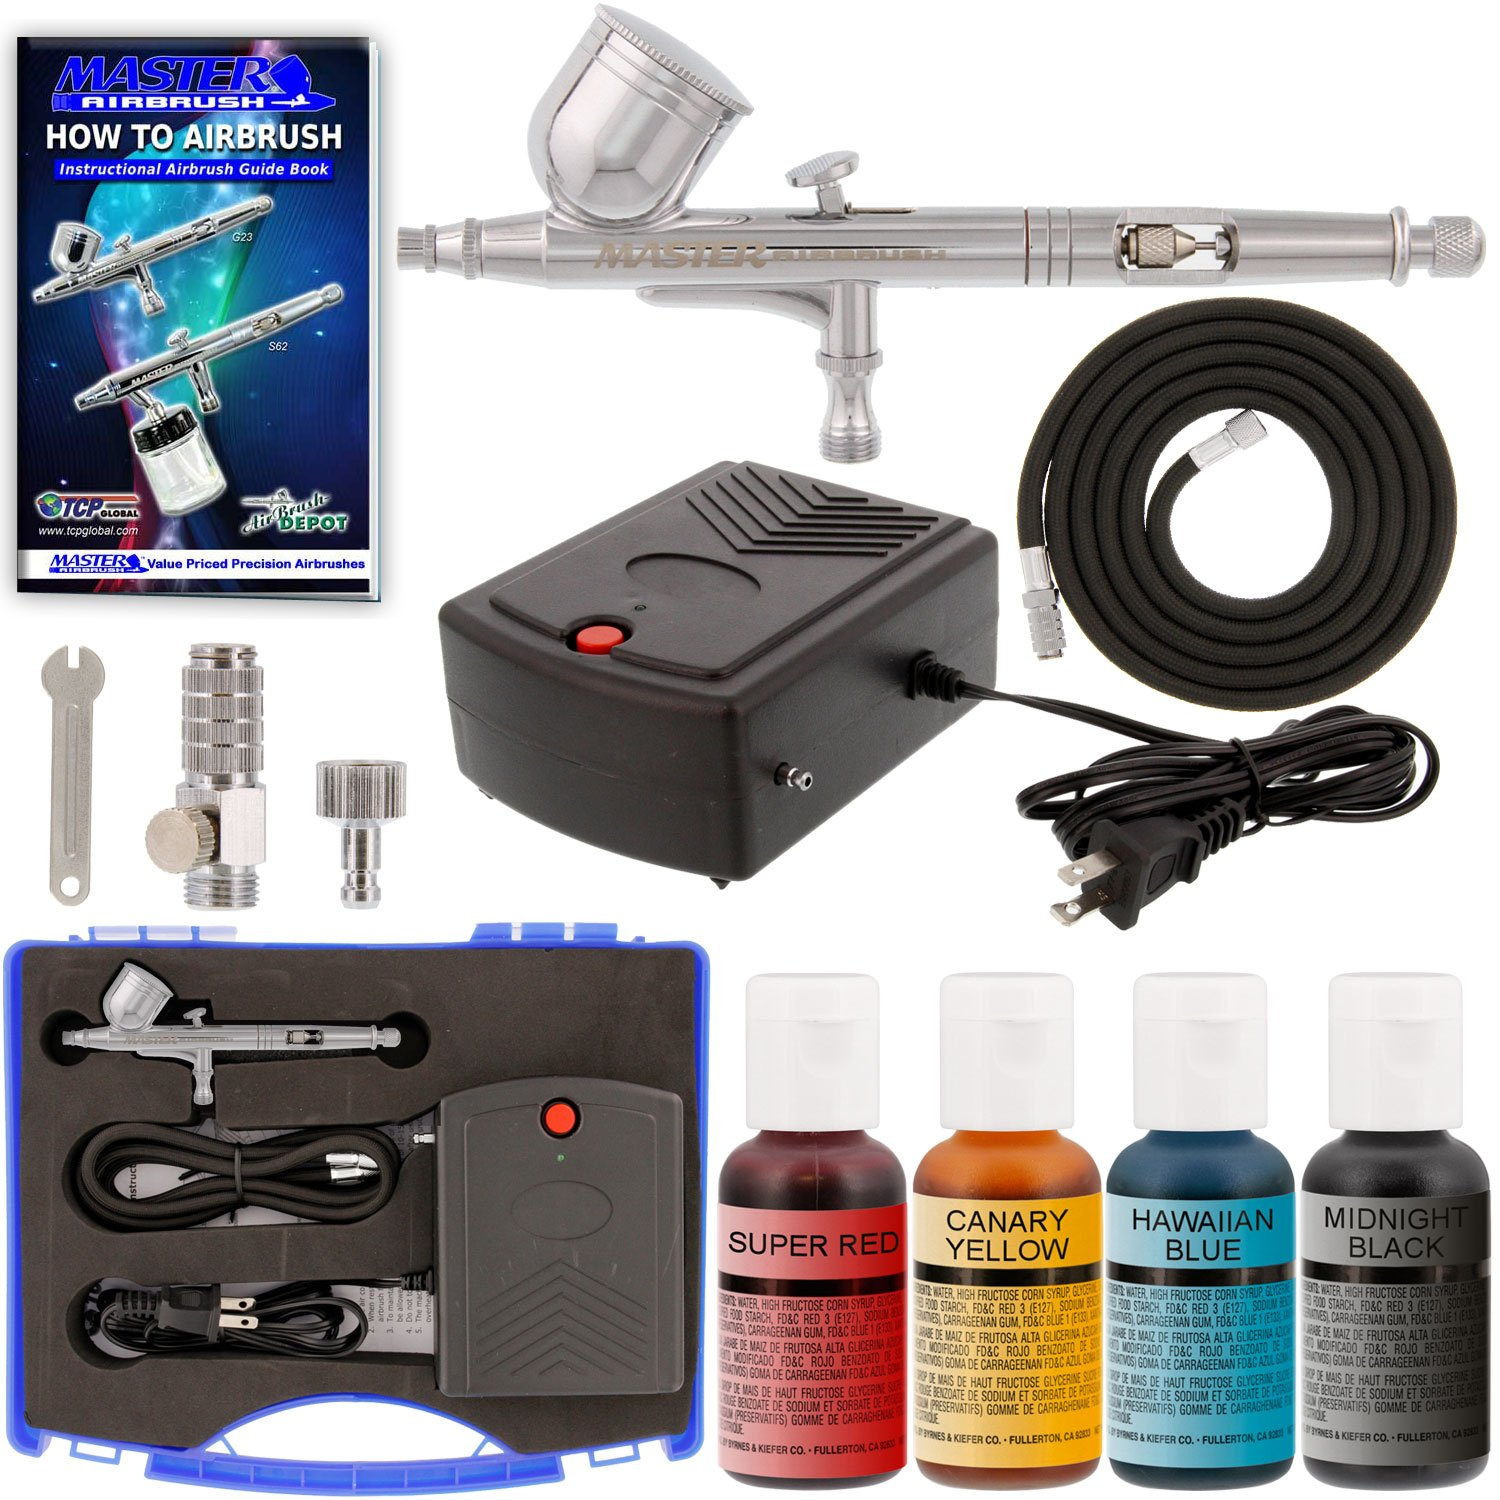 Complete Professional Airbrush Cake Decorating System with a Suction Feed Airbrush, Compressor, Air Hose and a Pack of 12 - .7 fl oz. Chefmaster Food Colors Master Airbrush KIT-CAKE-S68E